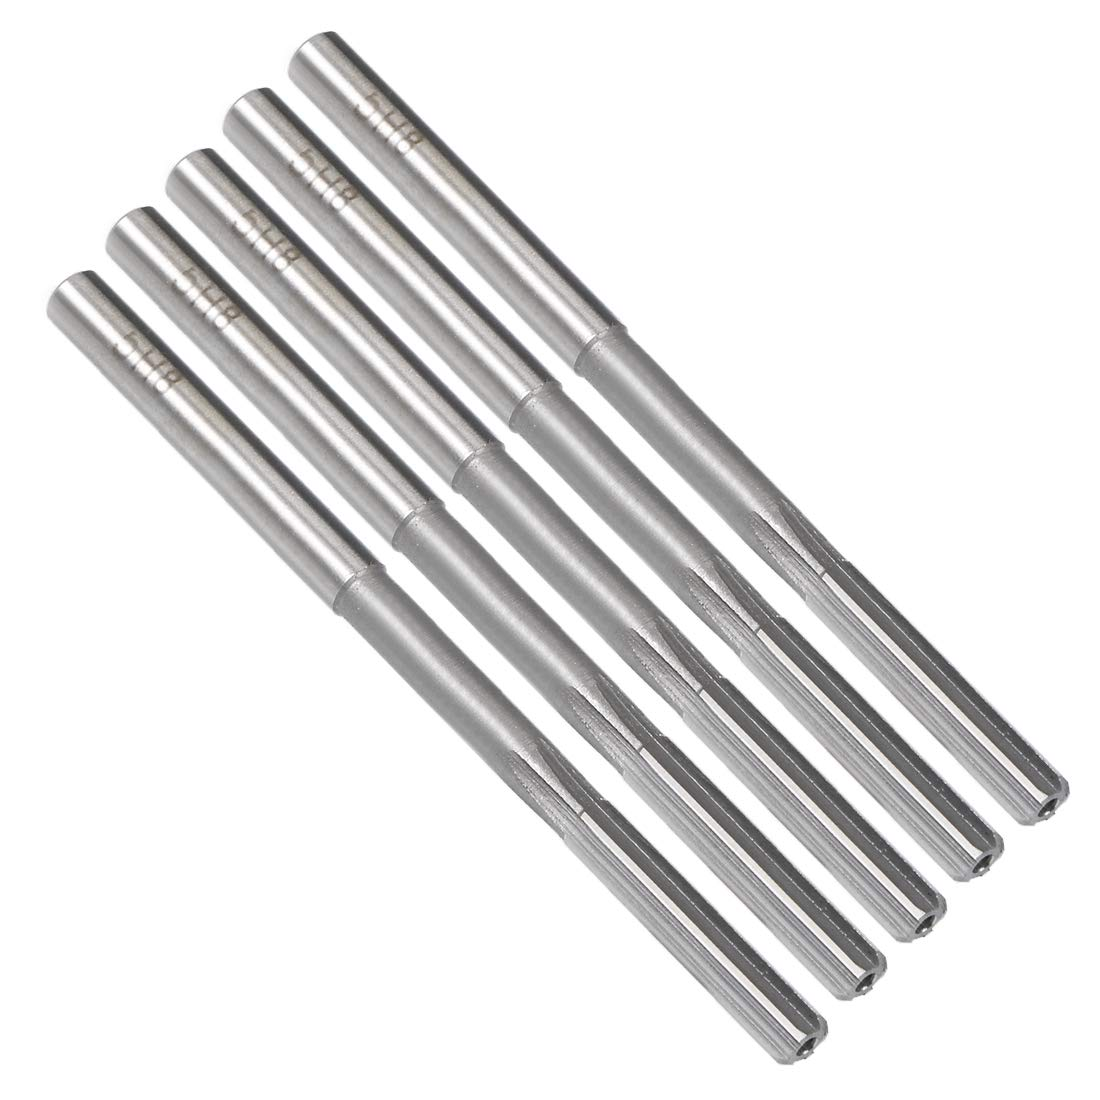 HSS Cobalt M35 Lathe Machine Reamer D4 6 Straight Flutes uxcell 8mm Chucking Reamer Round Shank Milling Cutting Tool for Stainless Steel Alloy Copper Metal